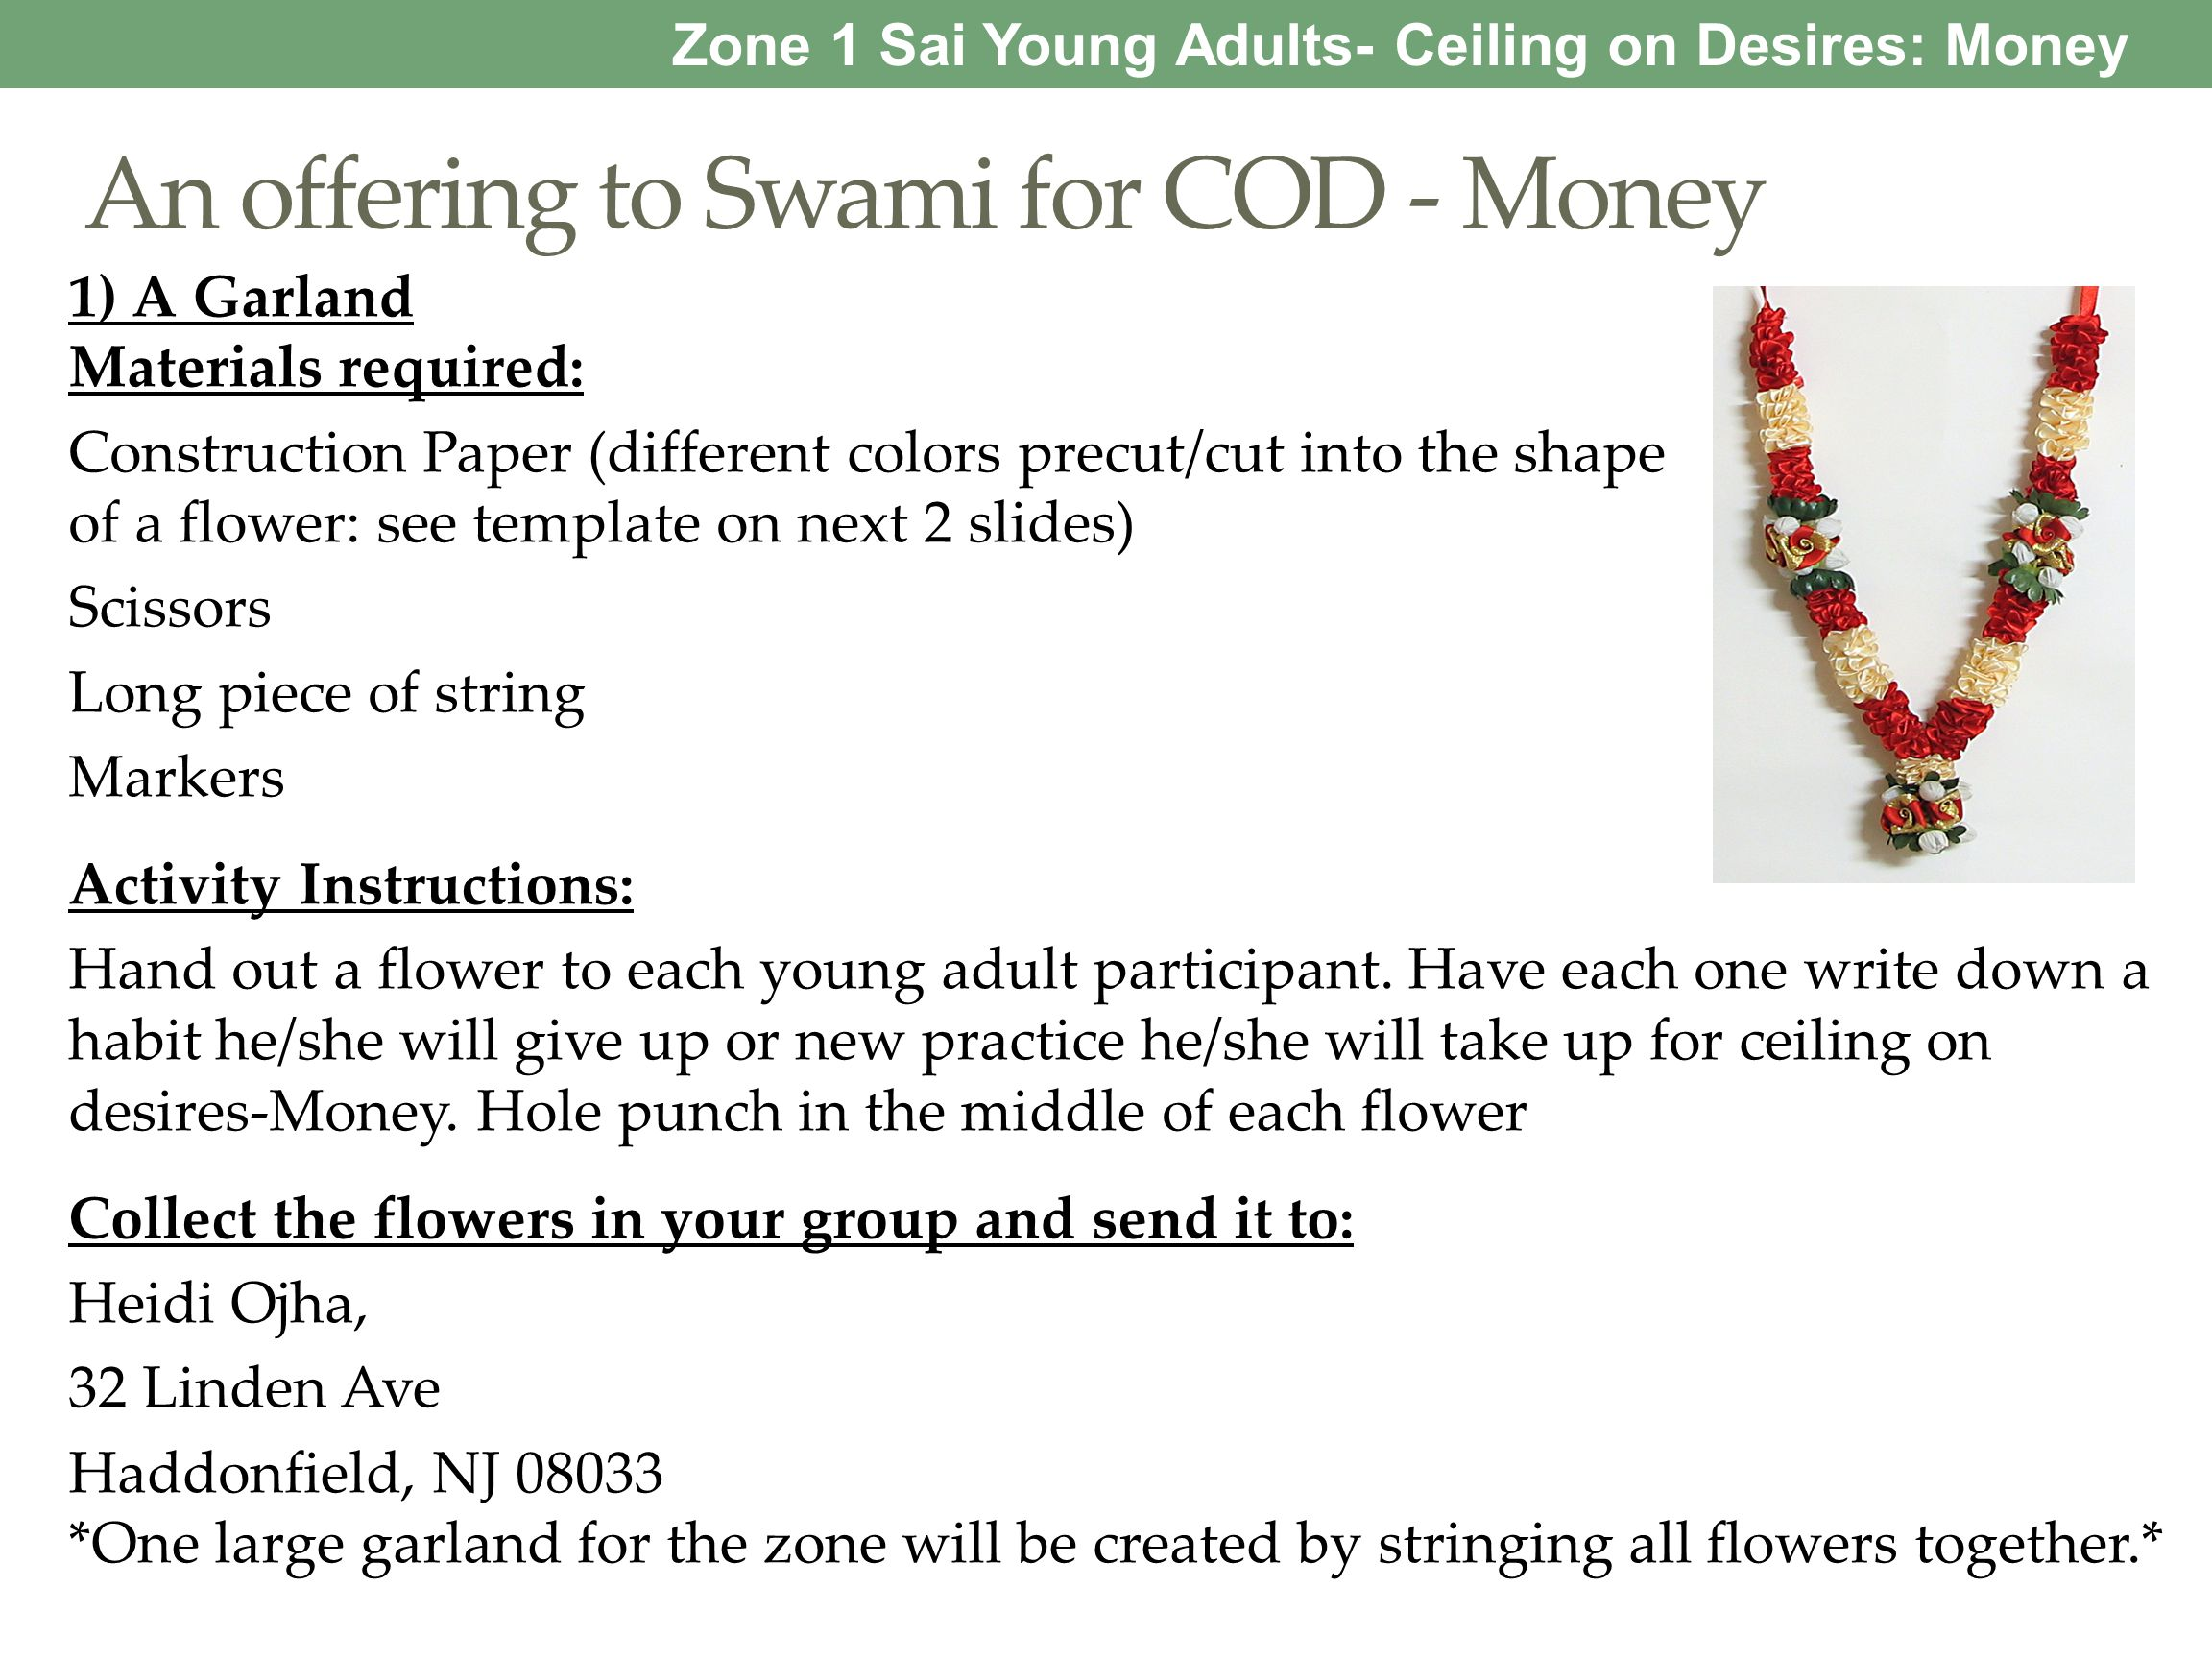 An offering to Swami for COD - Money